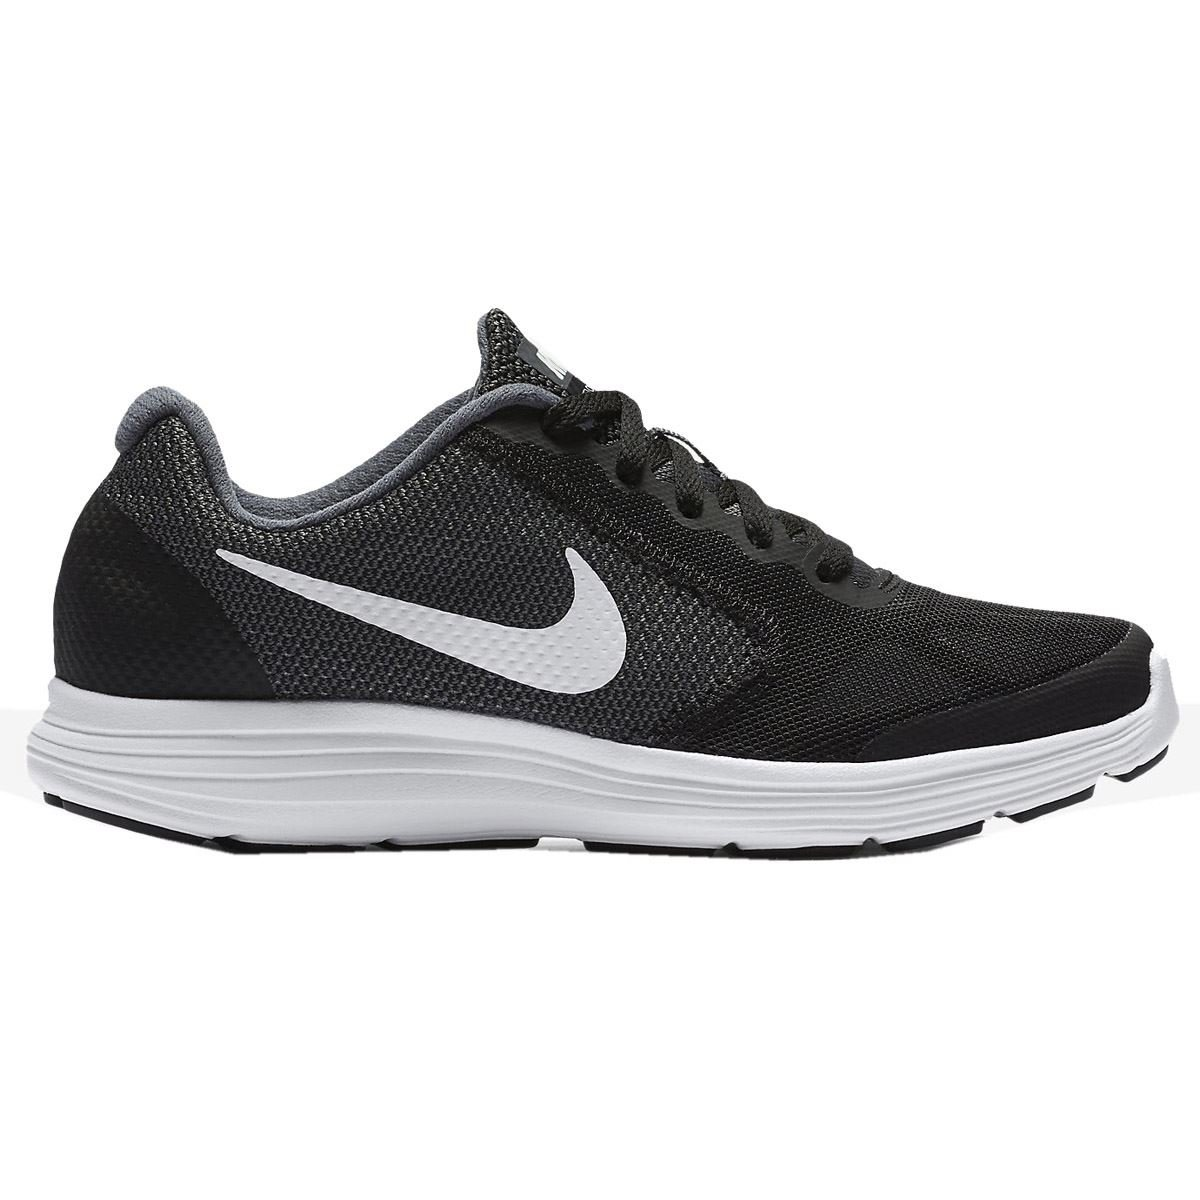 Nike Boy's Revolution 3 (GS) Running Shoe Dark Grey/White/Black/Pure Platinum Size 6.5 M US by NIKE